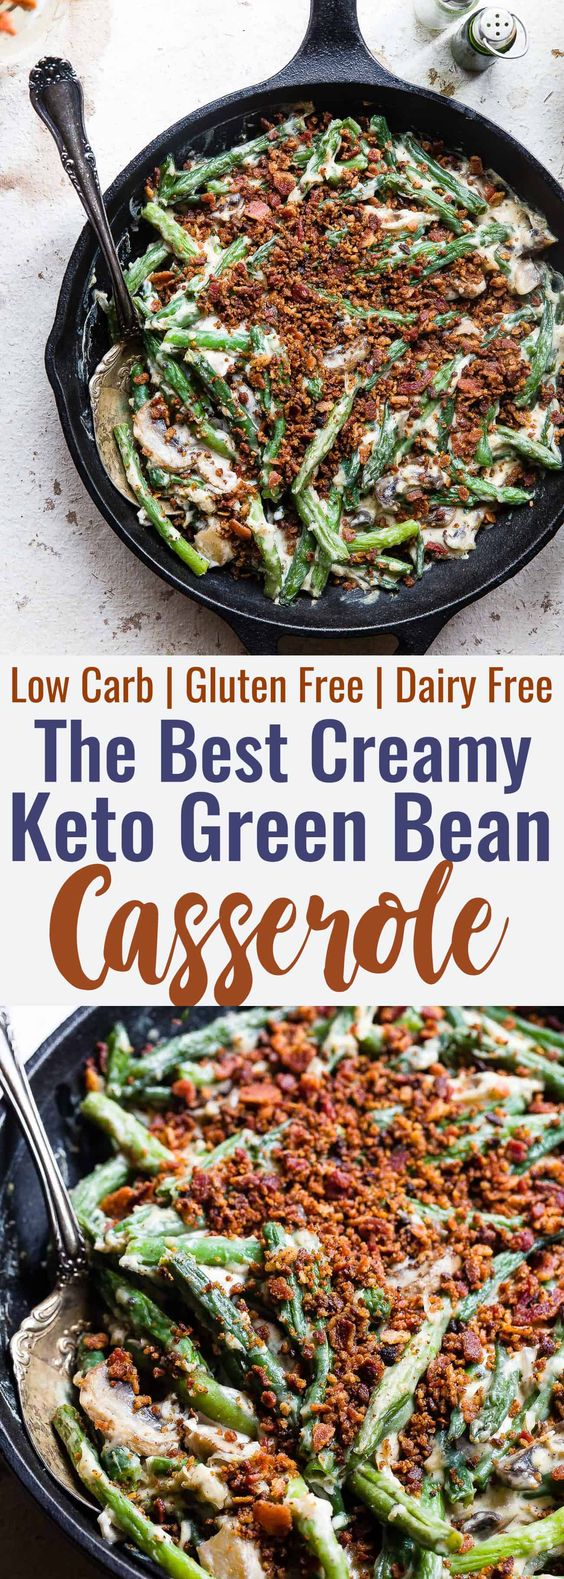 The Best Creamy Keto Green Bean Casserole